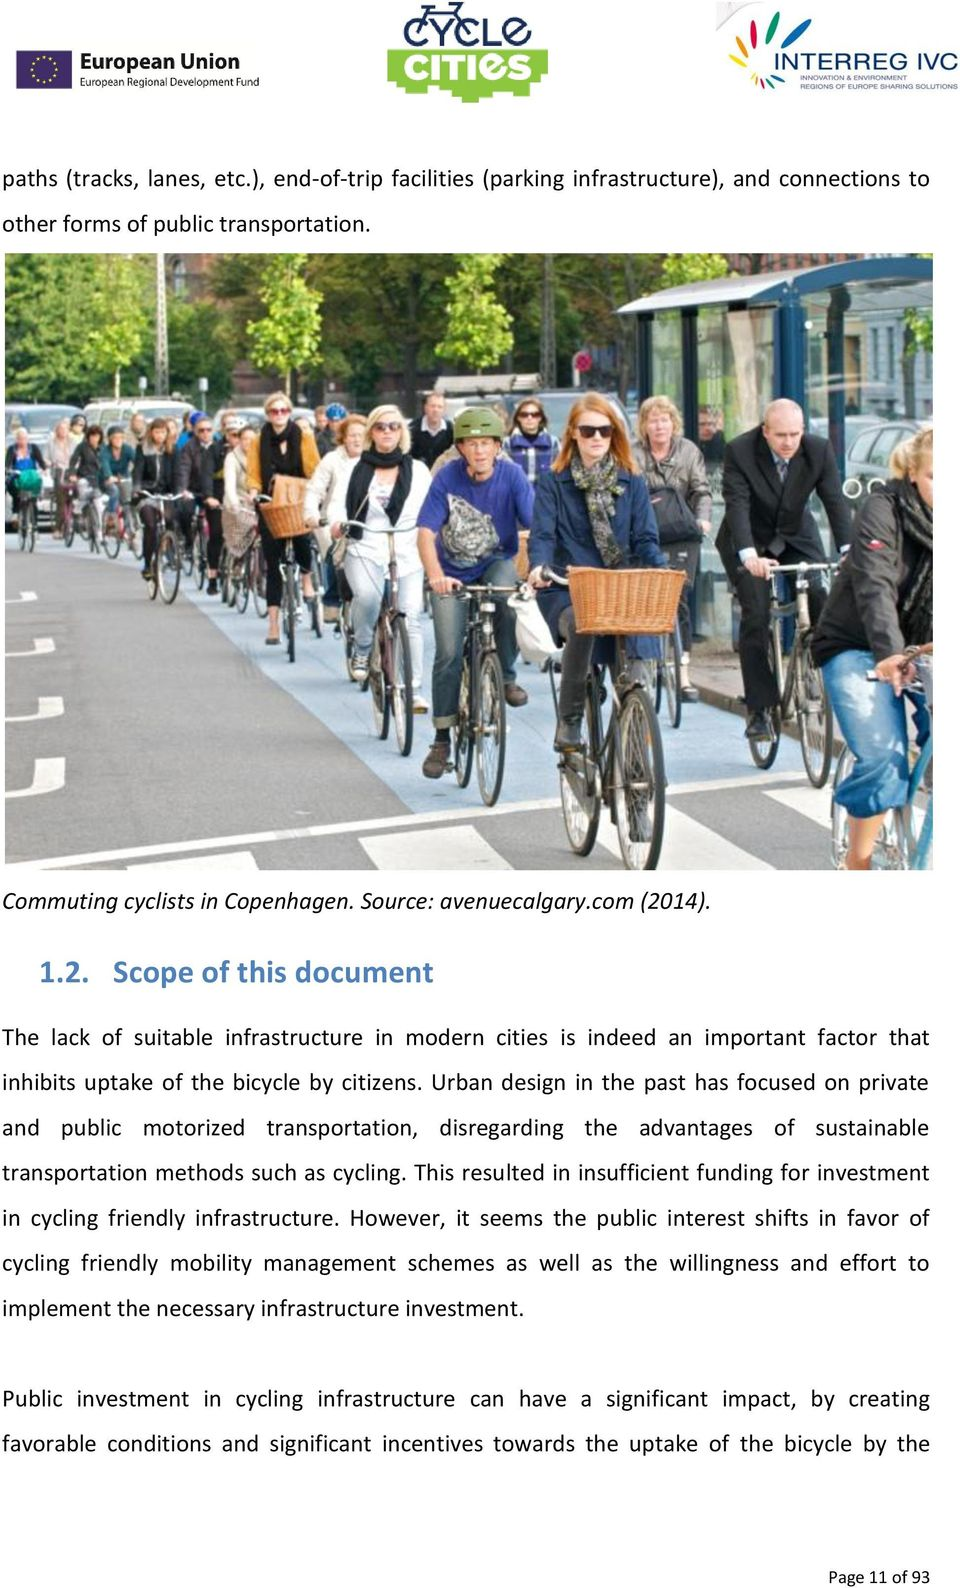 Urban design in the past has focused on private and public motorized transportation, disregarding the advantages of sustainable transportation methods such as cycling.